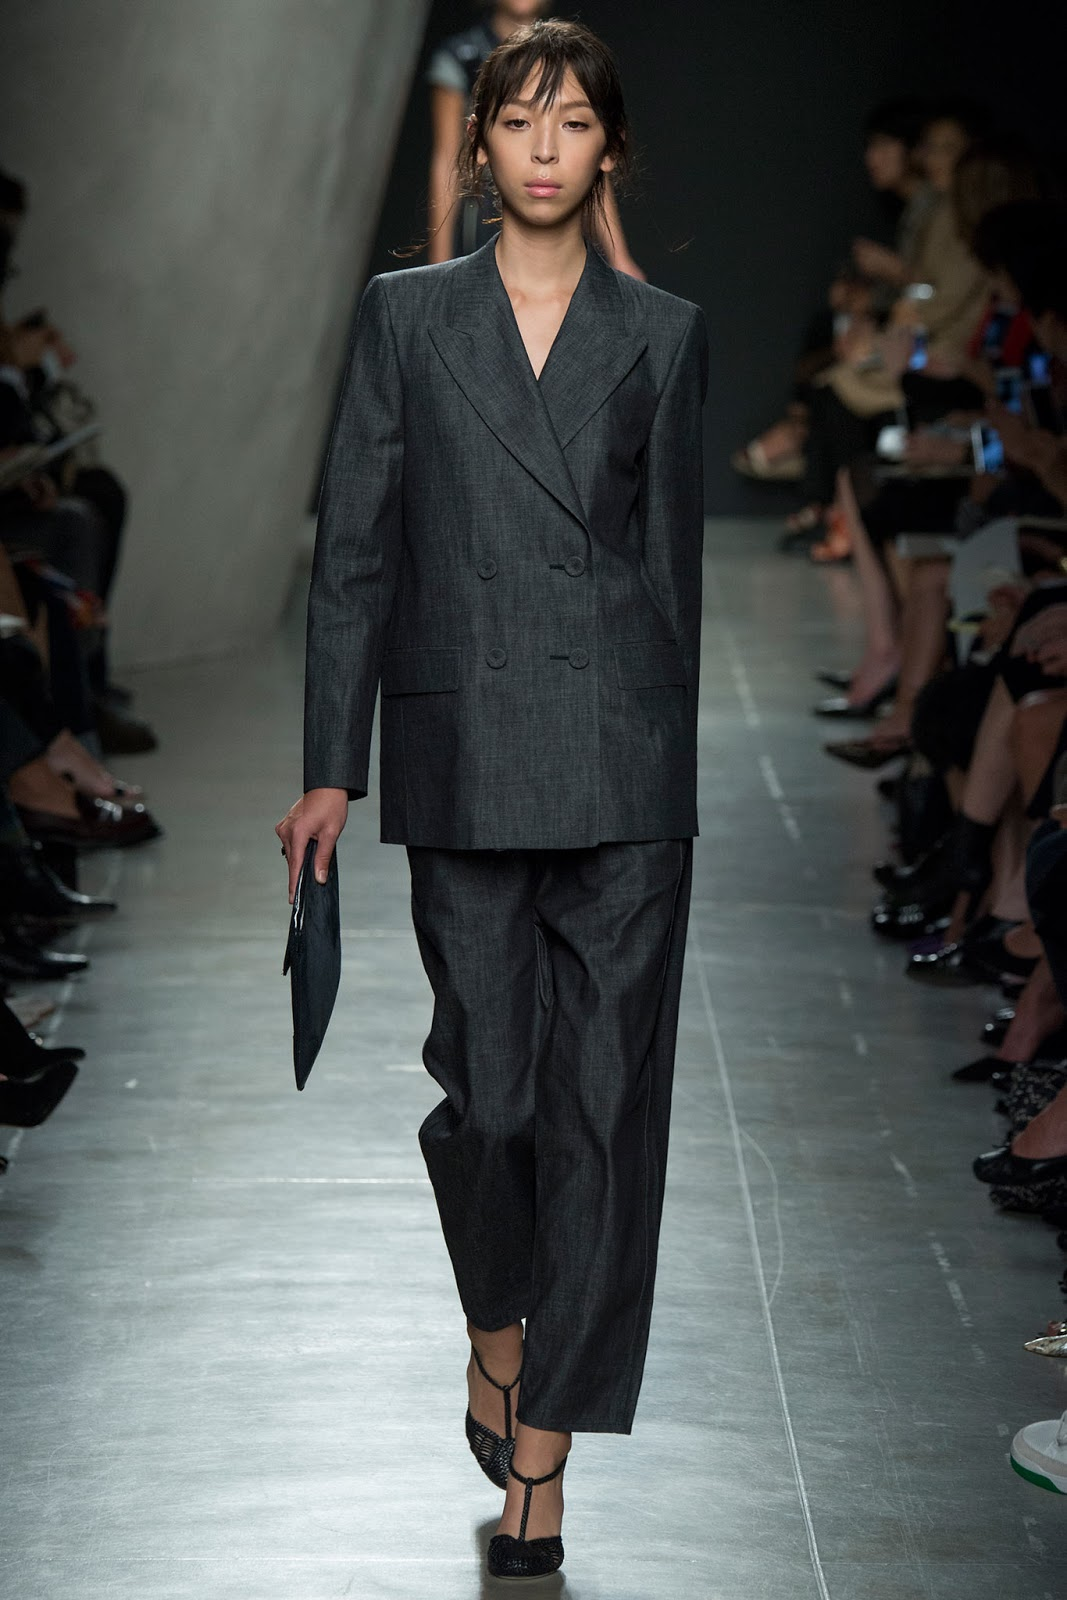 Bottega Veneta / Spring/Summer 2015 trends / trouser suit / styling tips and outfit inspiration / via fashioned by love british fashion blog